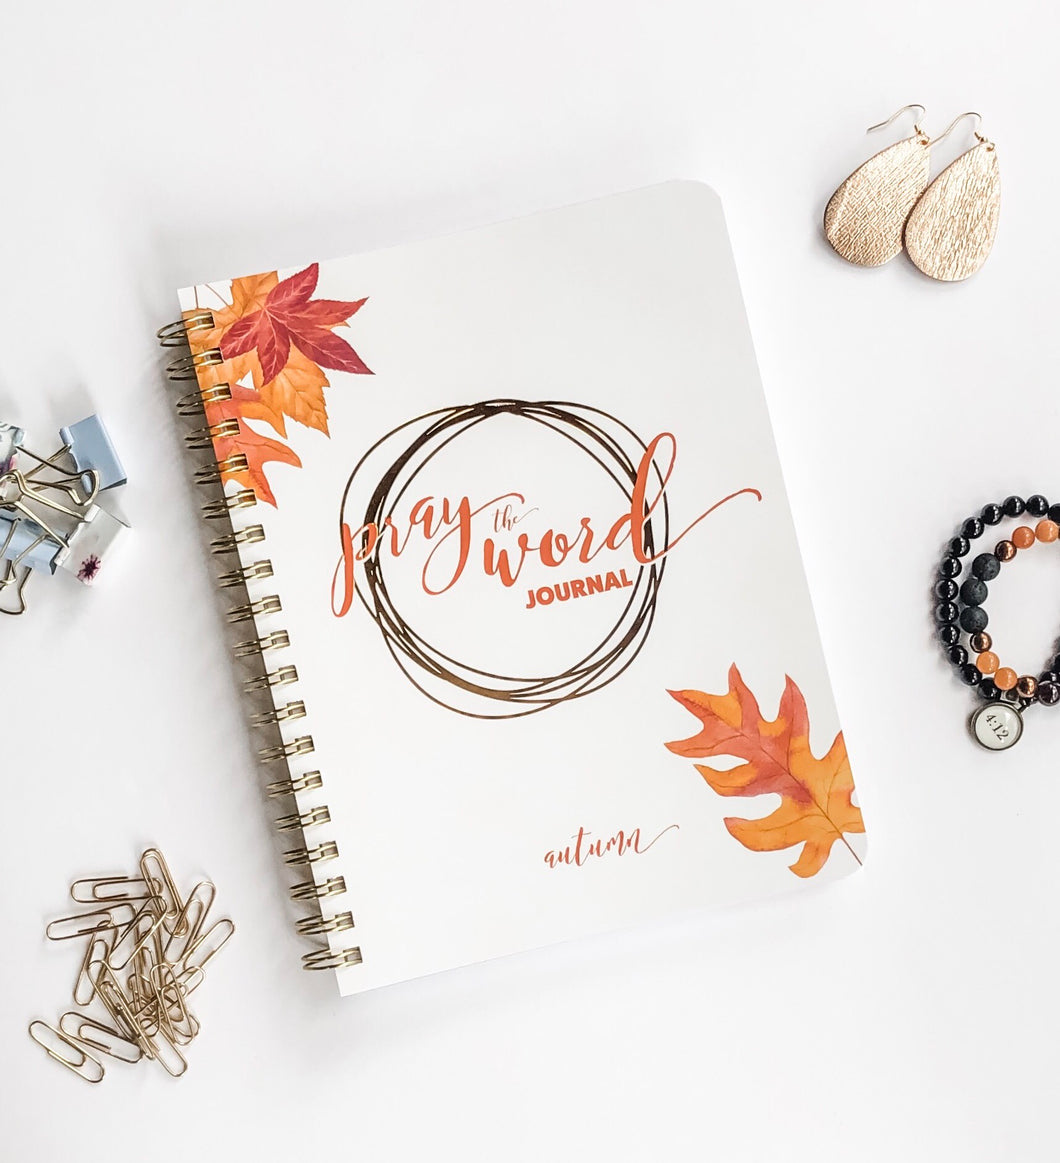 Pray the Word Journal: Autumn 2019